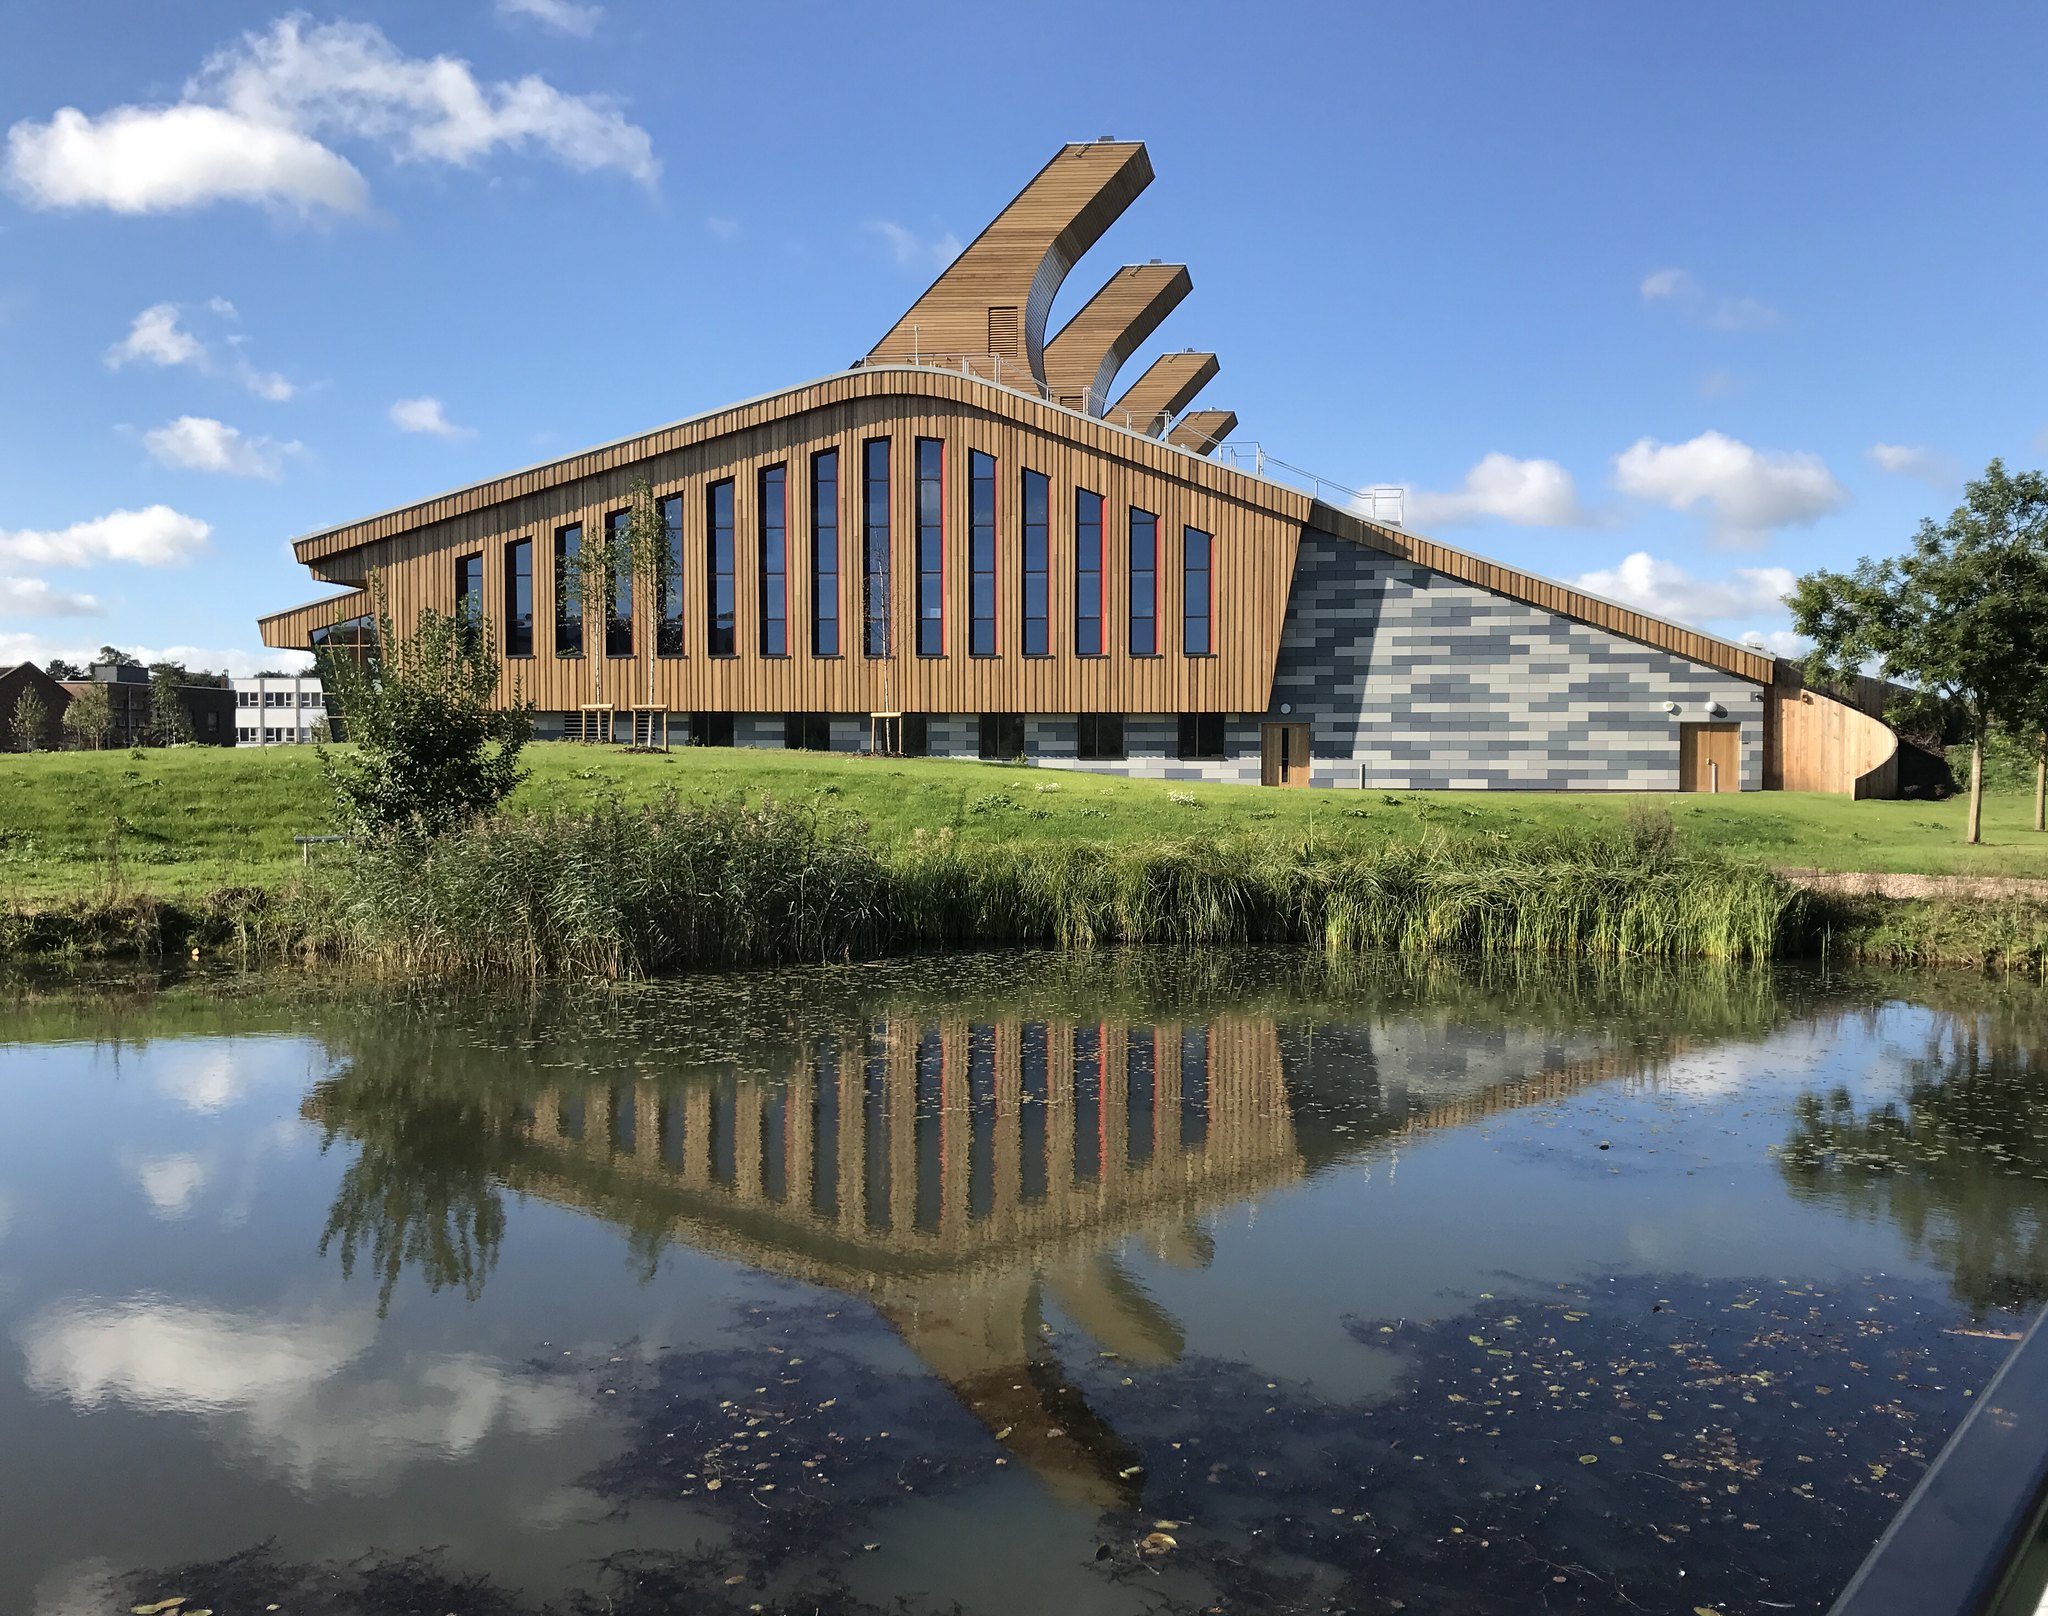 A great example of green architecture: the Glaxo Smith Kline Carbon Neutral Laboratory for Sustainable Chemistry